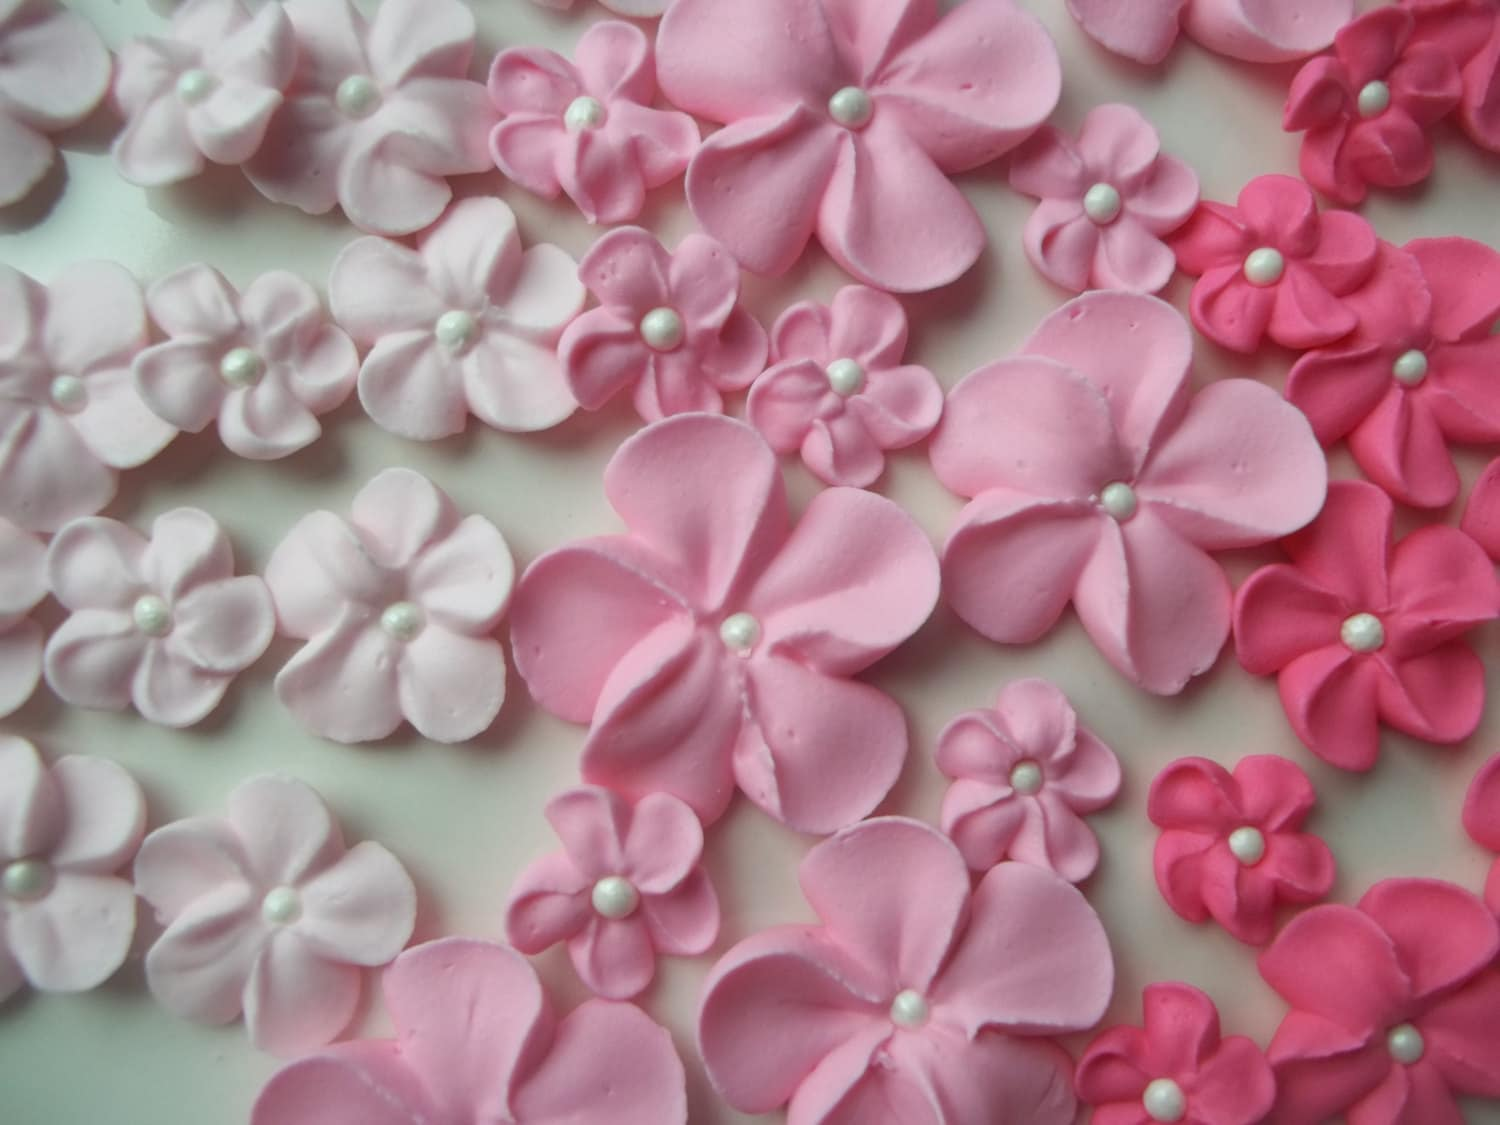 Cake Decorating Ready Made Flowers : Shades of pink ombre flowers Made to order Edible cake